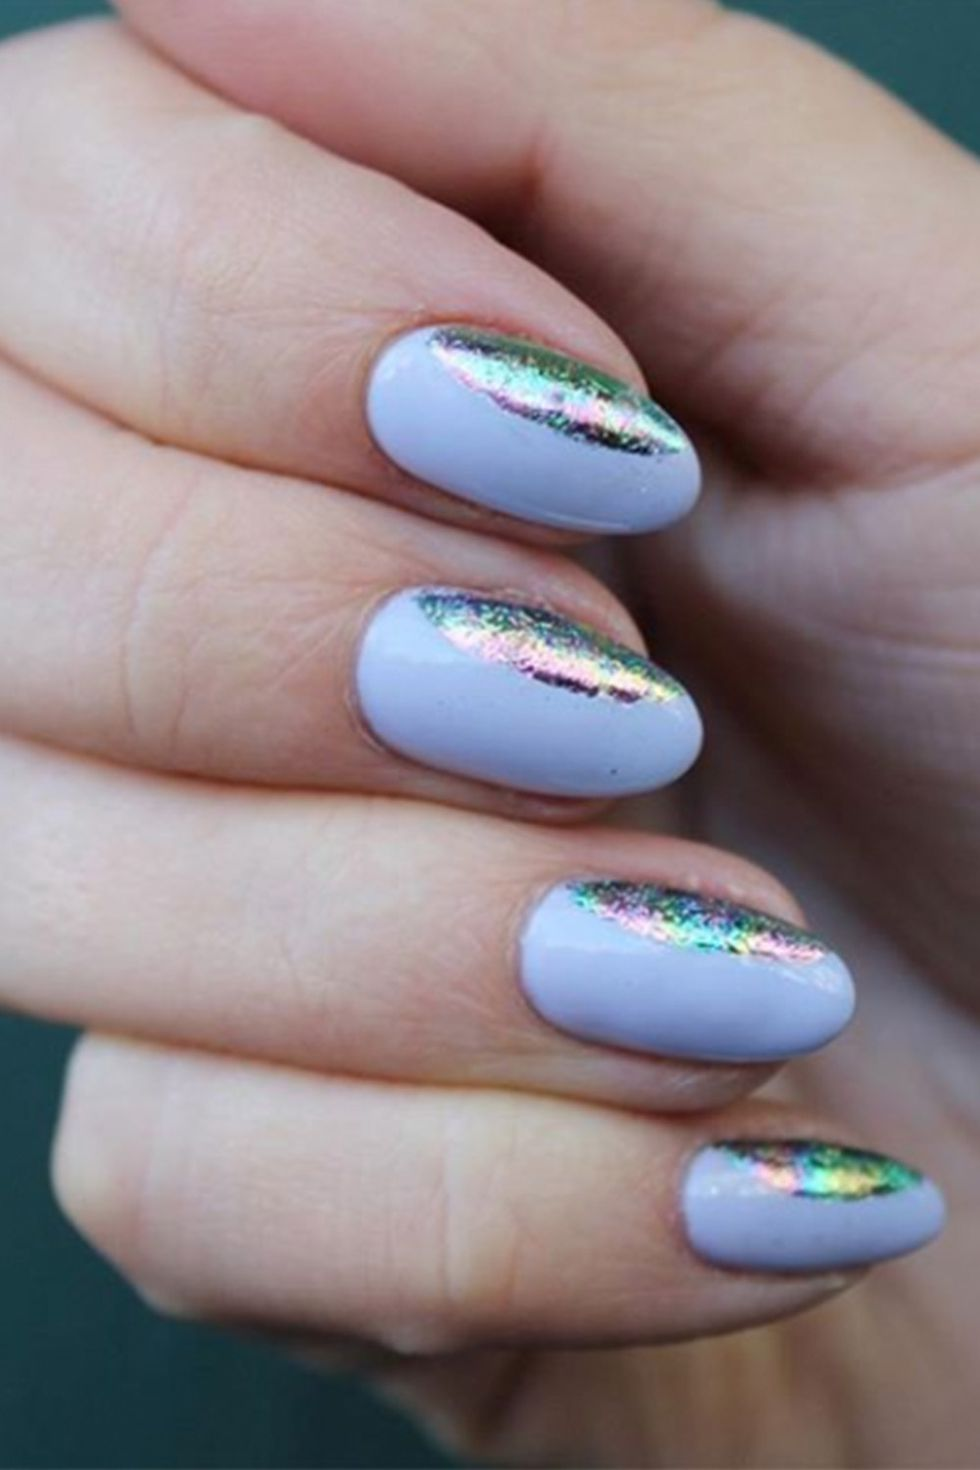 Holographic Foil Almond shaped Nails-vvpretty